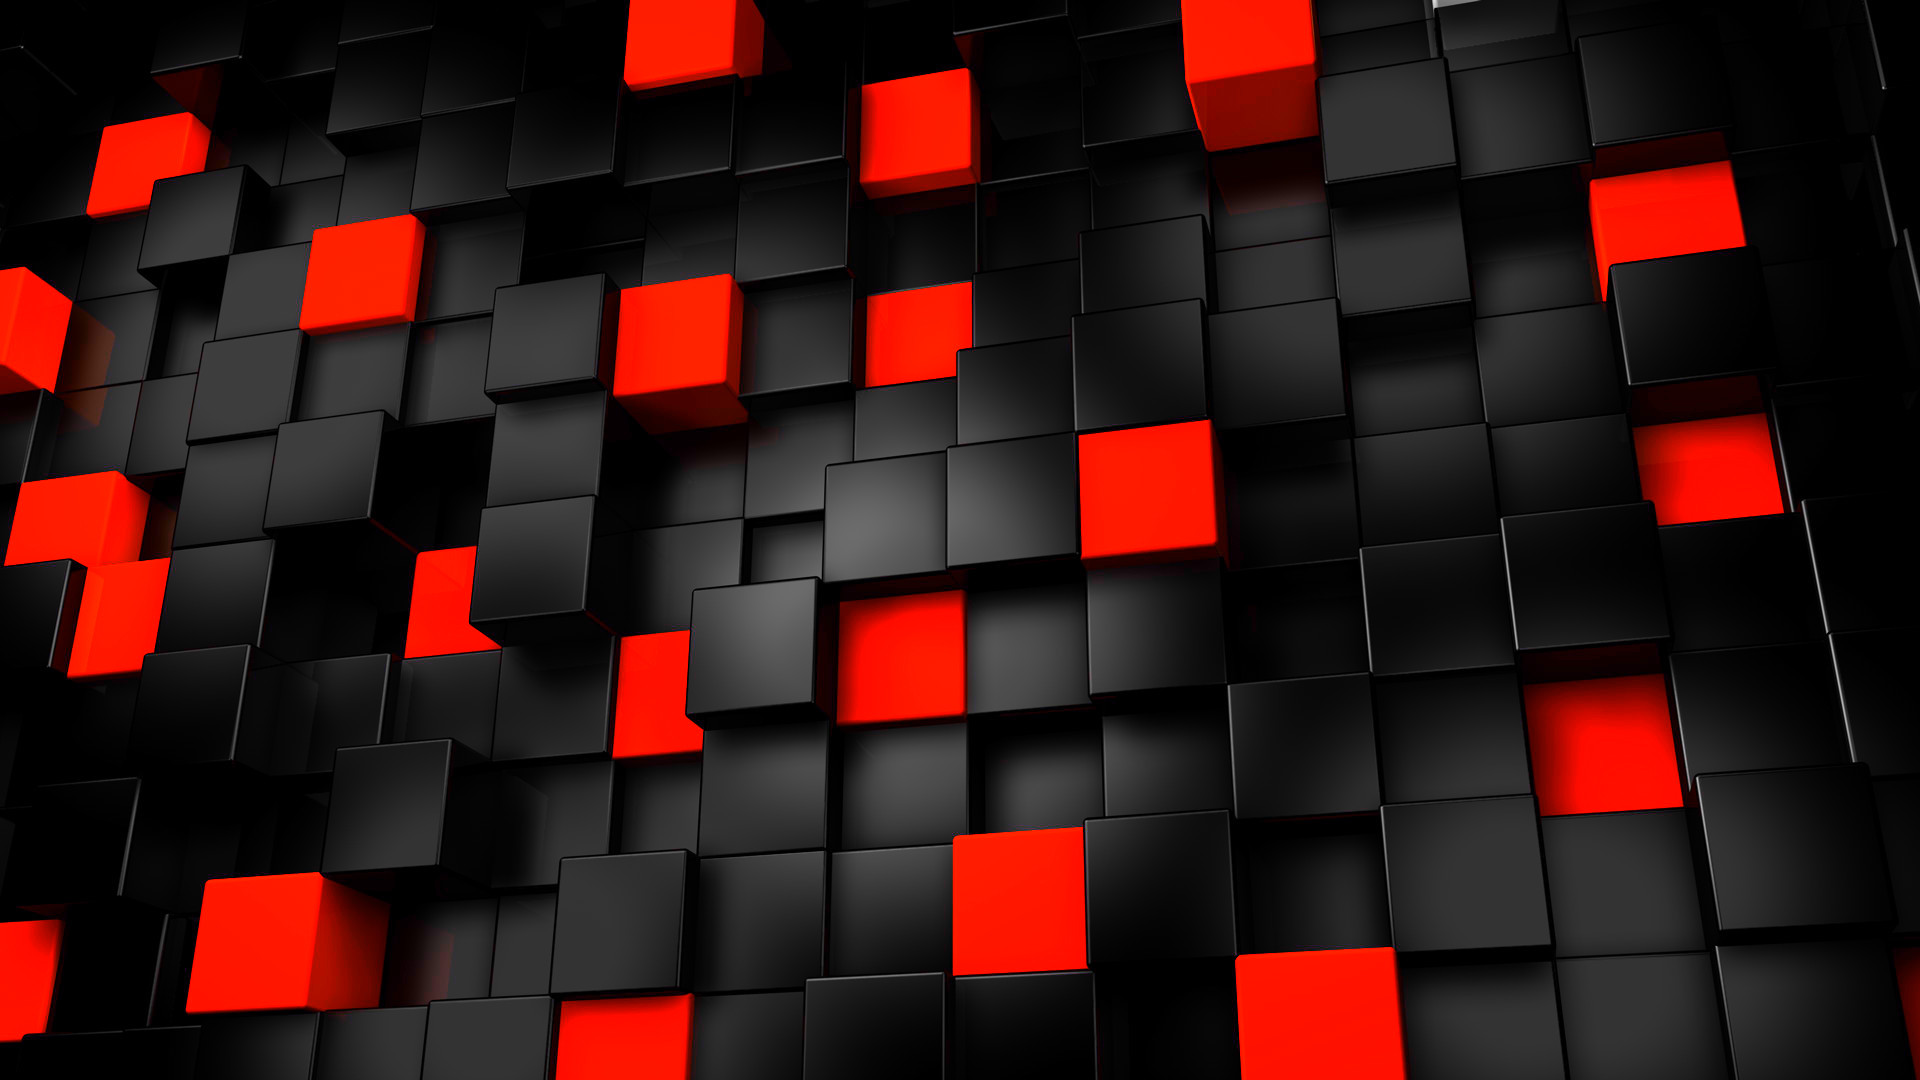 Abstract Art Black and White Red Wallpaper HD 1080p